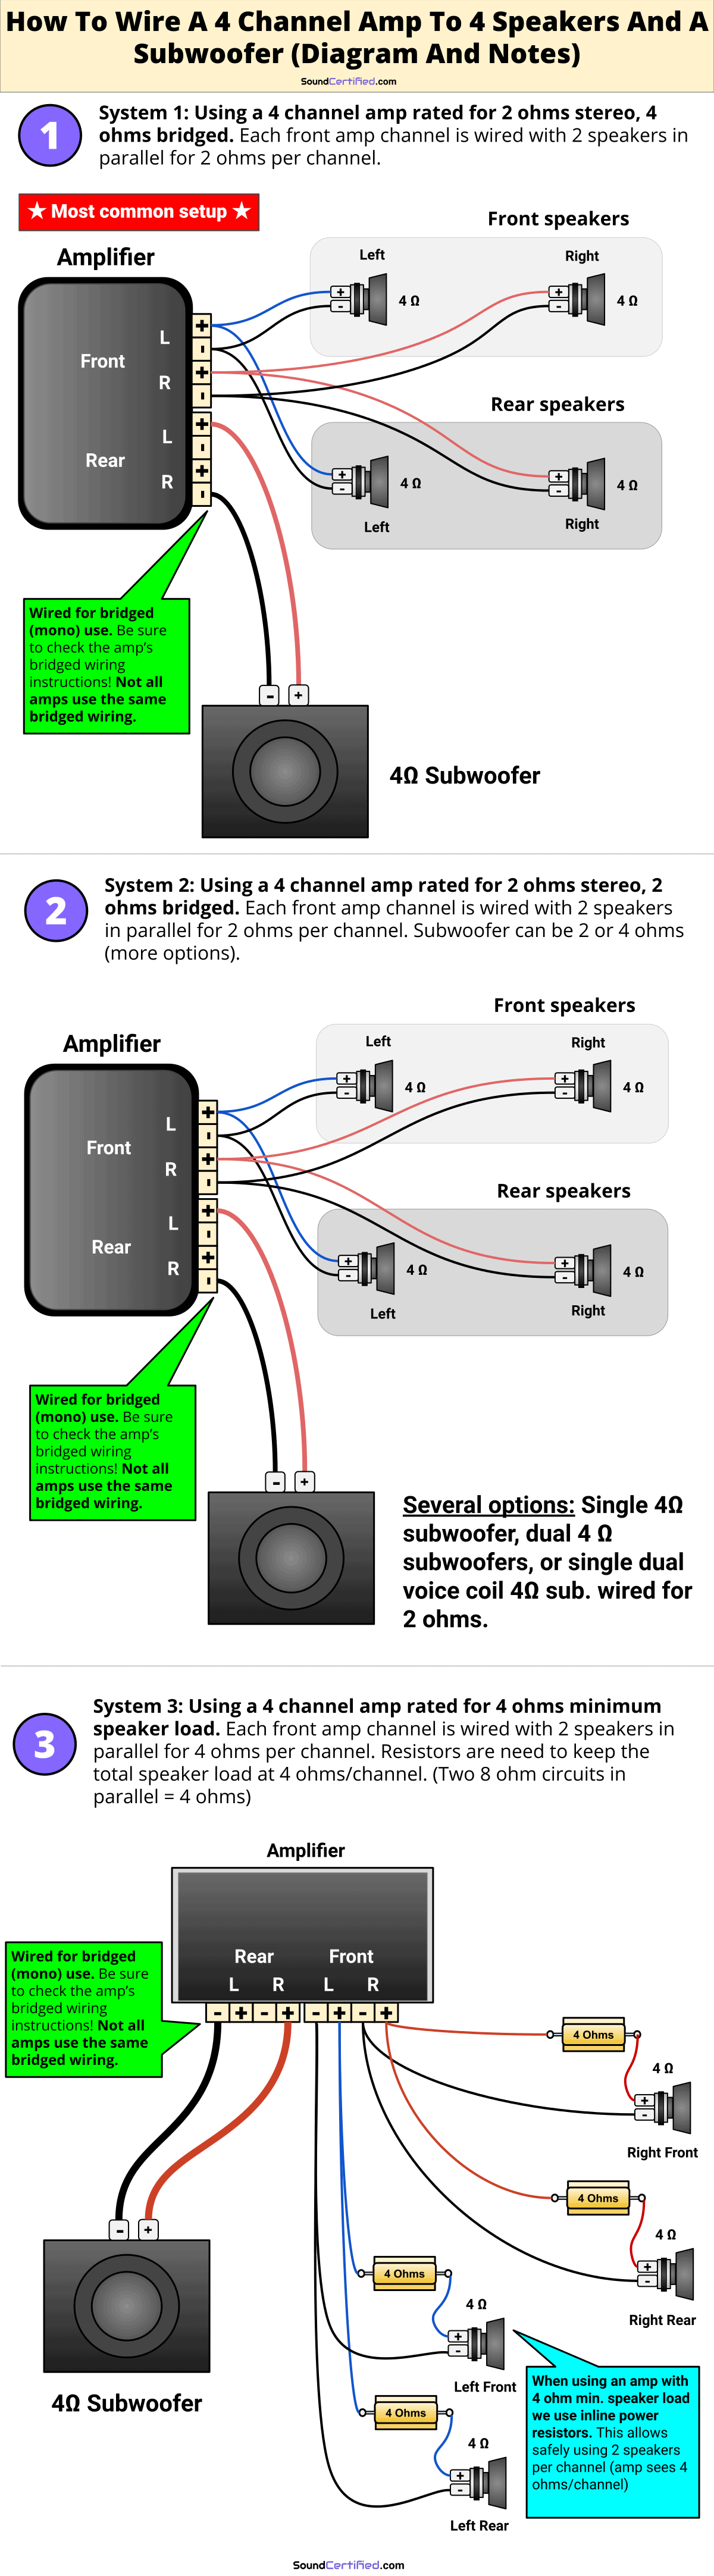 How To Connect Rca Cables To Amp : connect, cables, Channel, Speakers, Detailed, Guide, Diagrams